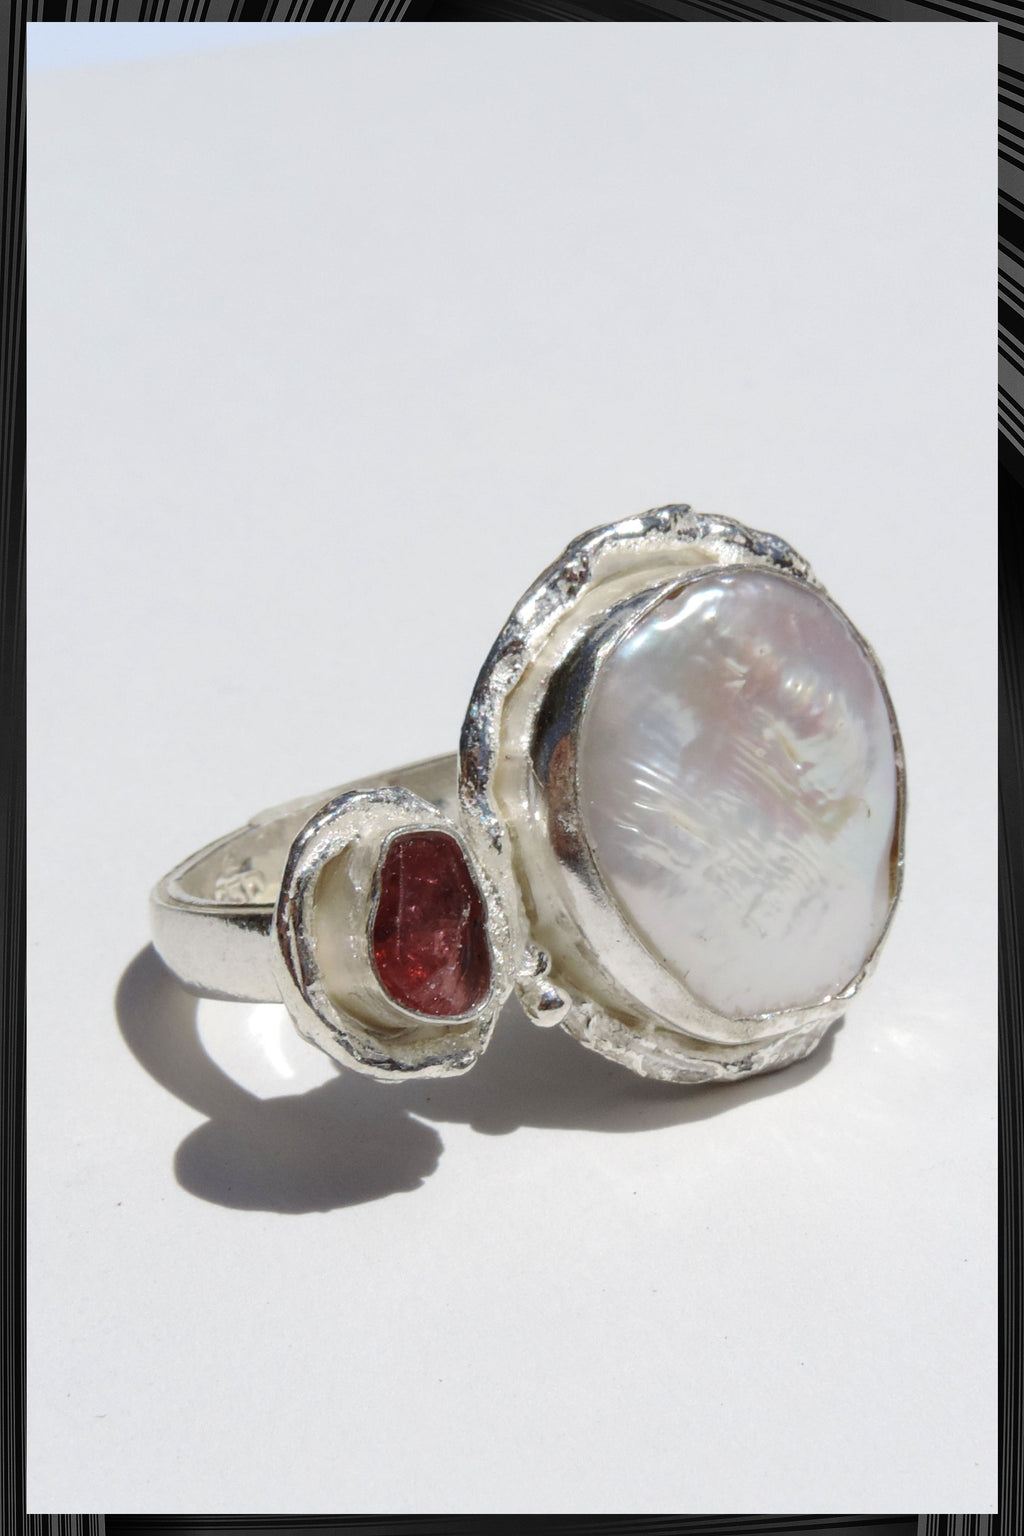 The Pearl and Garnet Ring